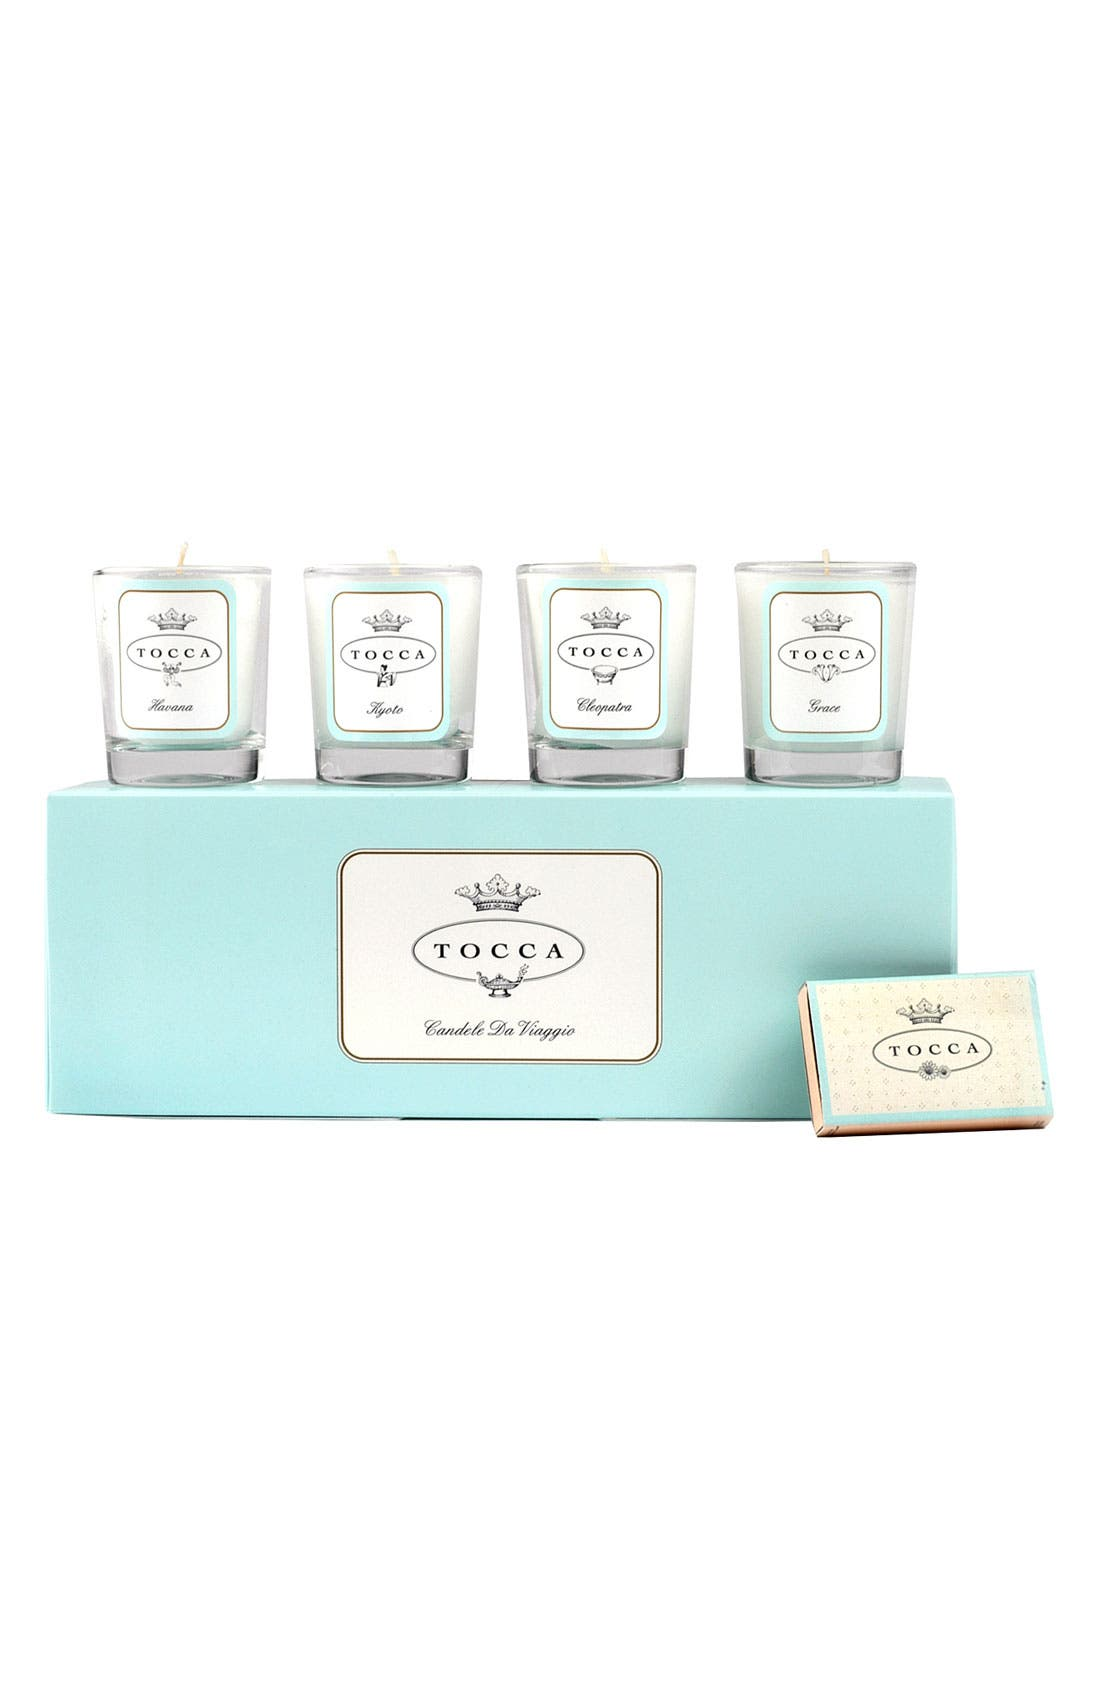 'Candele da Viaggio' Travel Votive Set,                             Main thumbnail 1, color,                             000